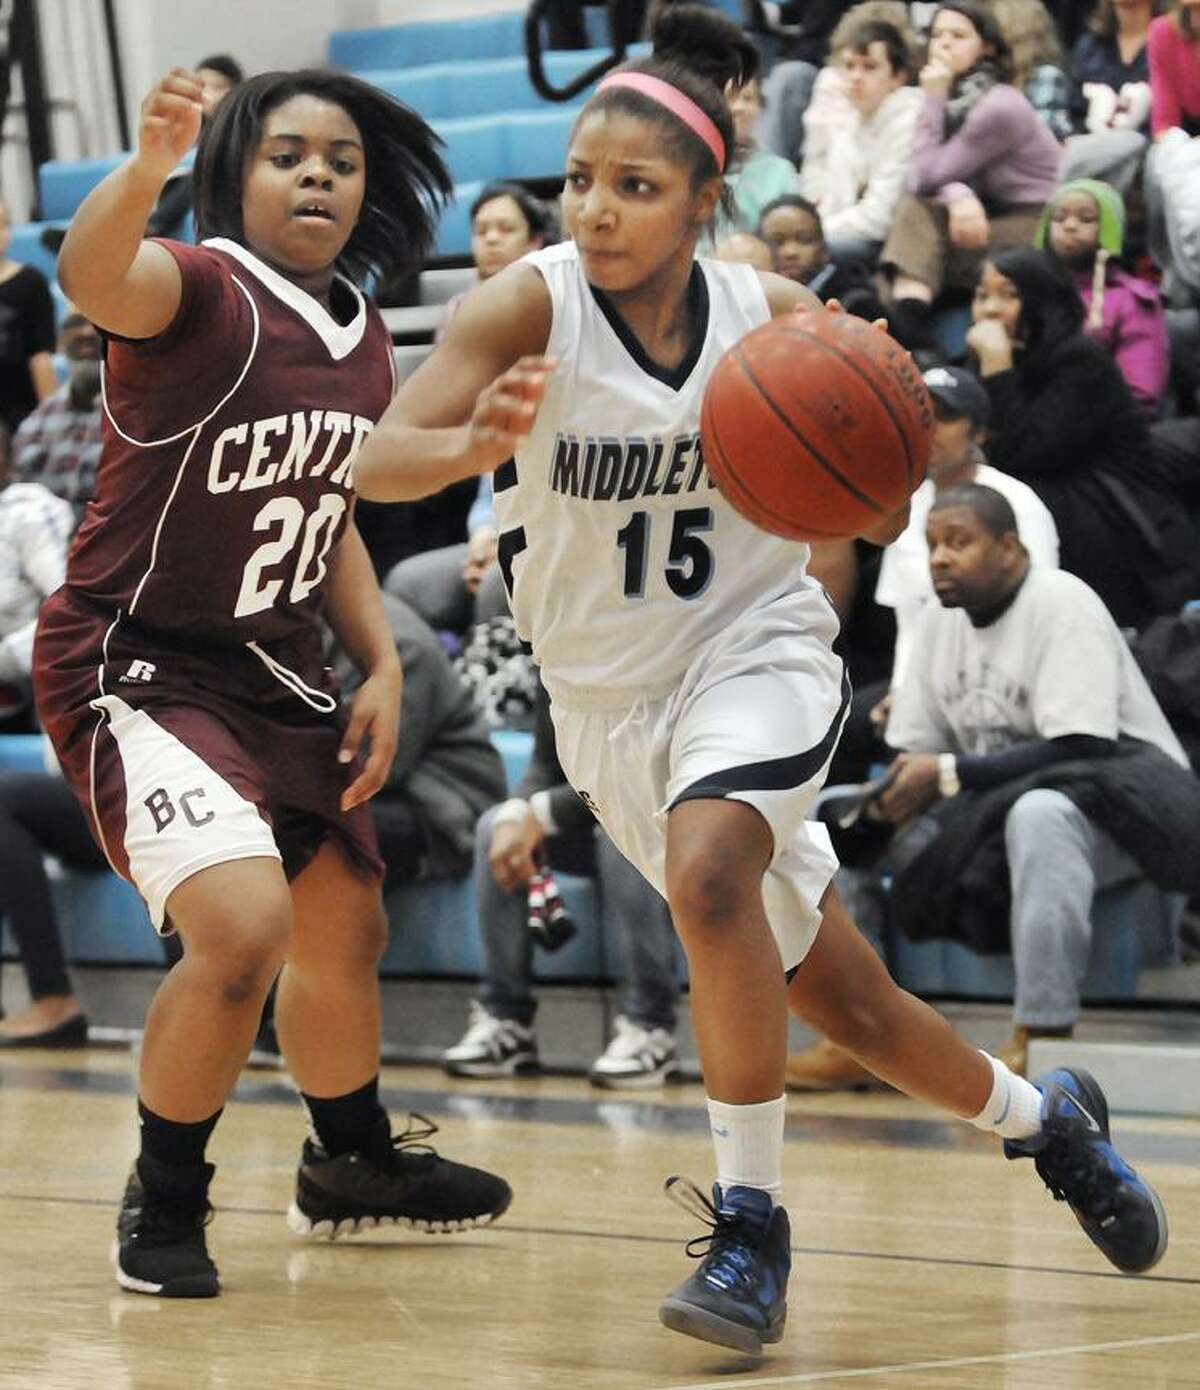 The Middletown Press 1.13.12 Middletown's Tamyia King battles under the boards against Bristol Central's Tyra Talbit # and Chandler Walker #30 Friday night. The Blue Dragons defeated Briston Central 50-36.